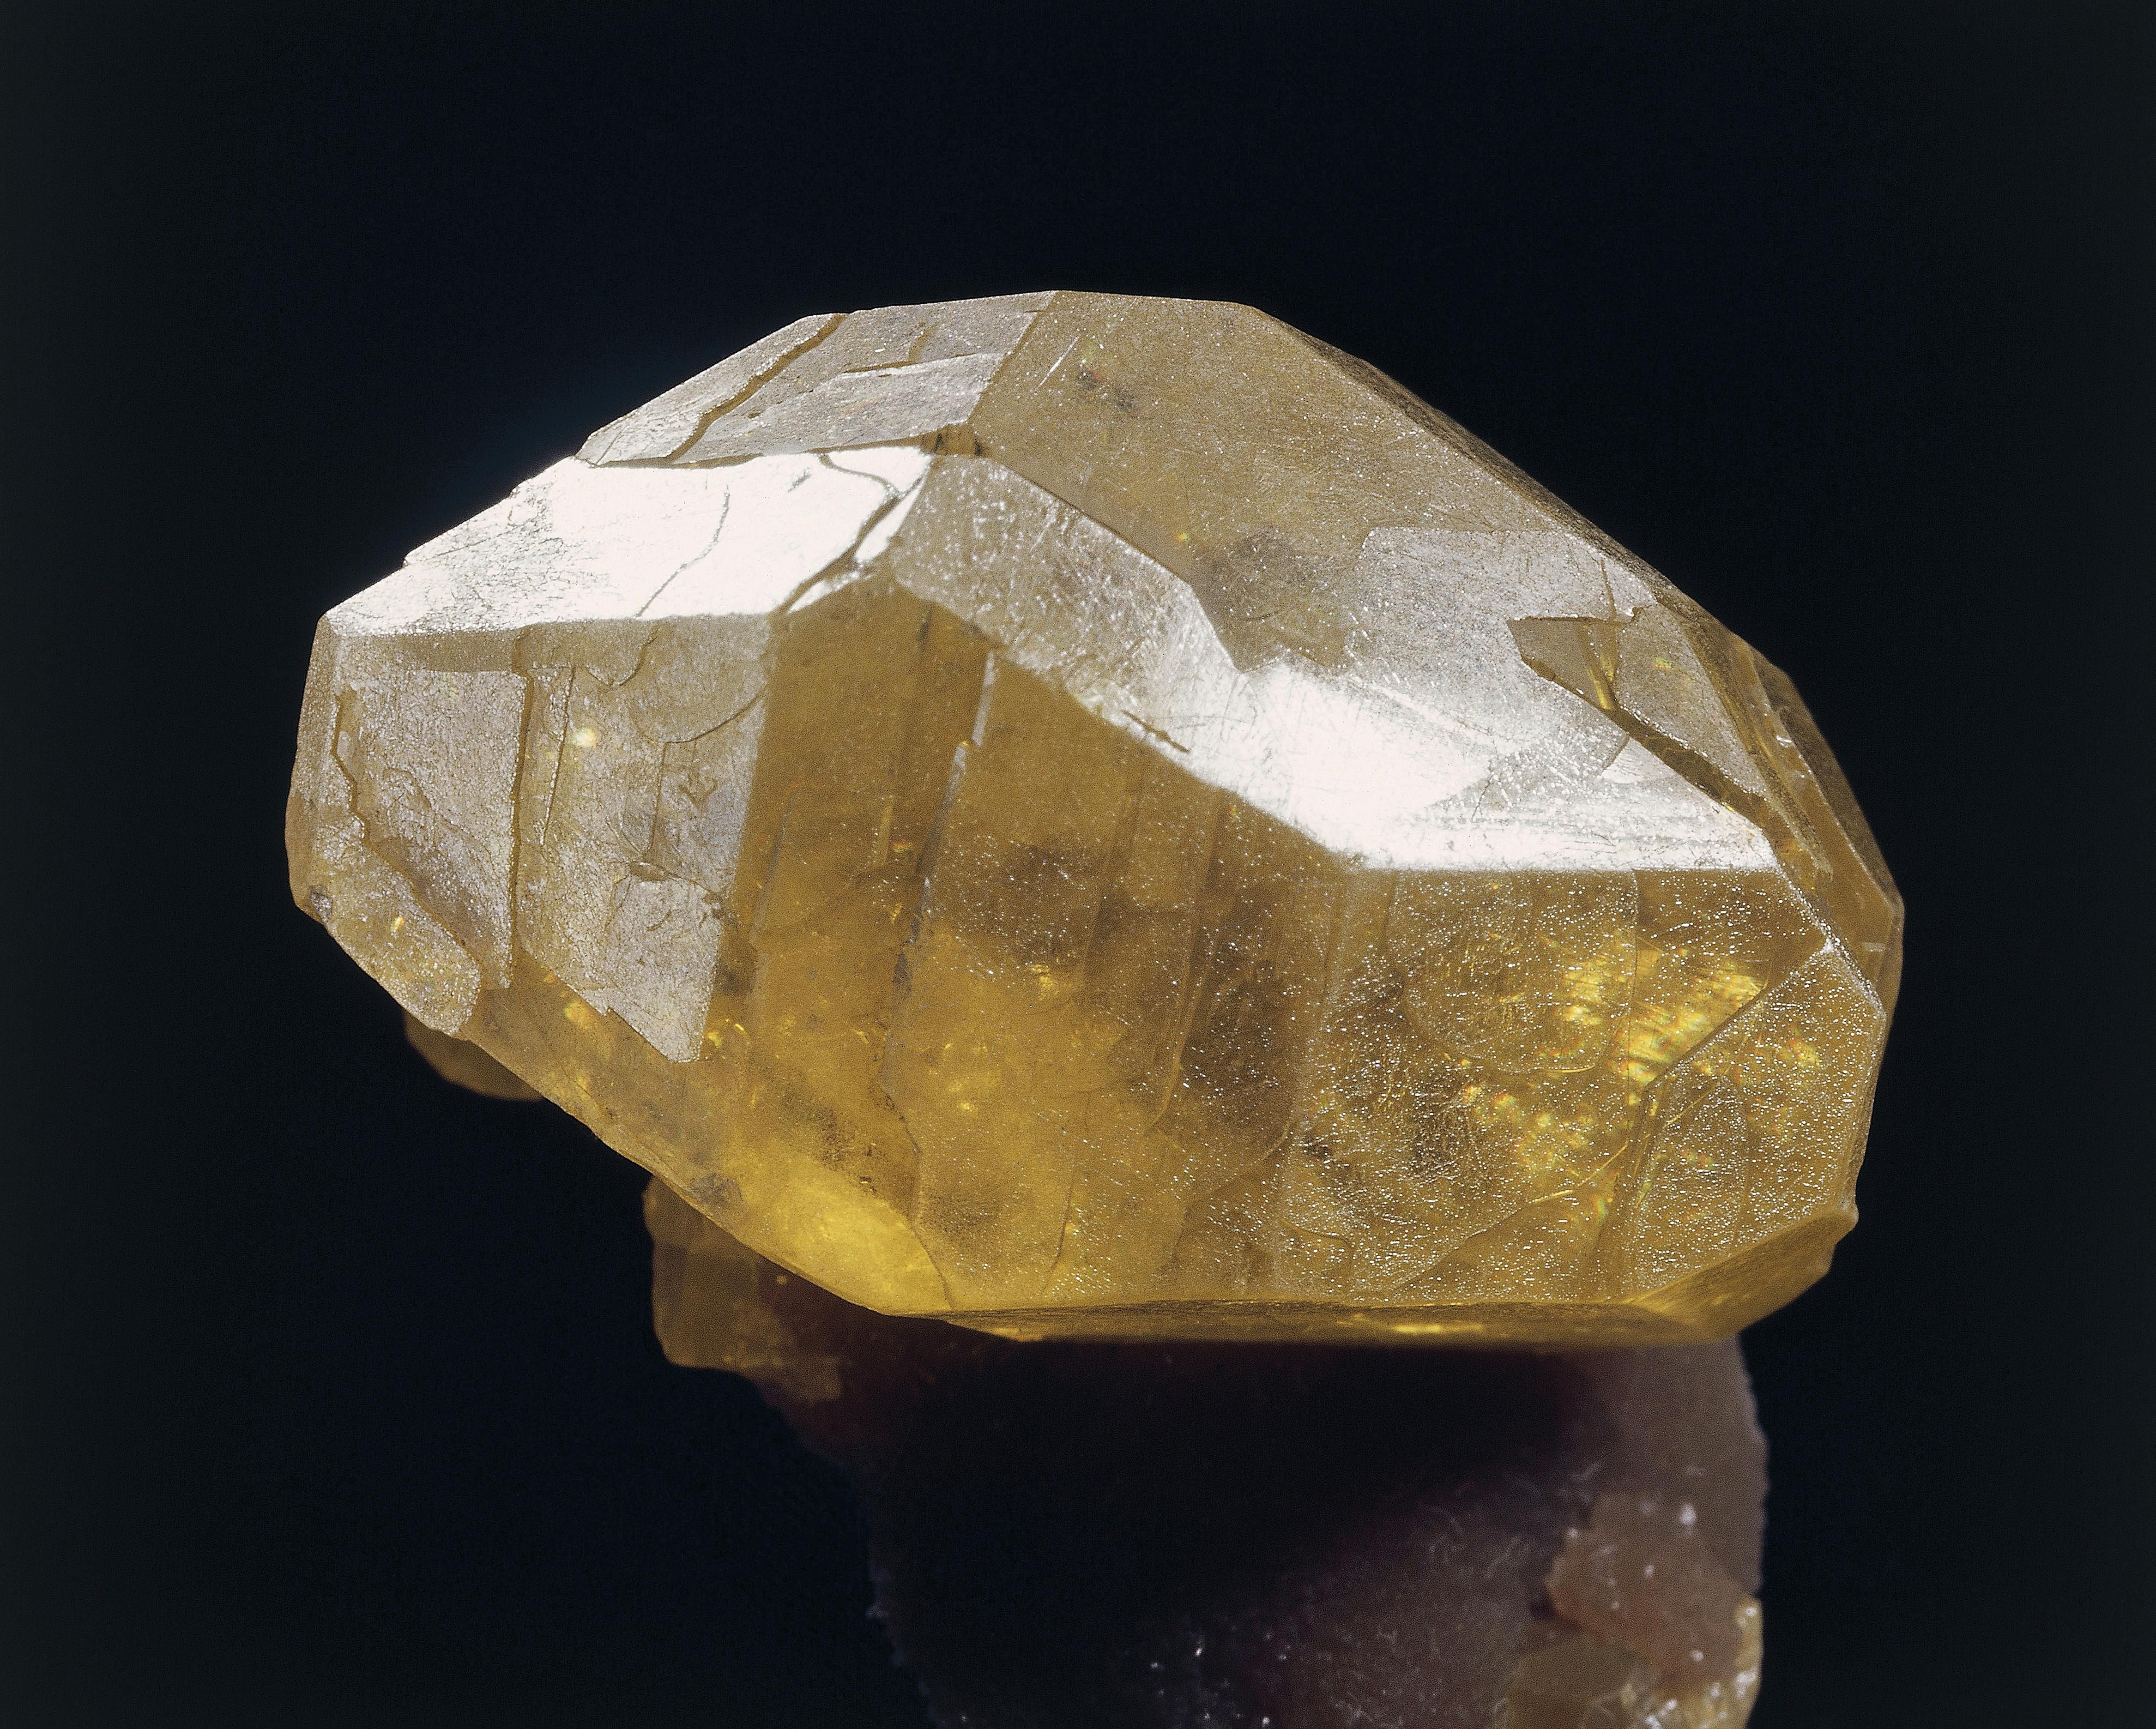 This picture shows a crystal of pure sulfur.